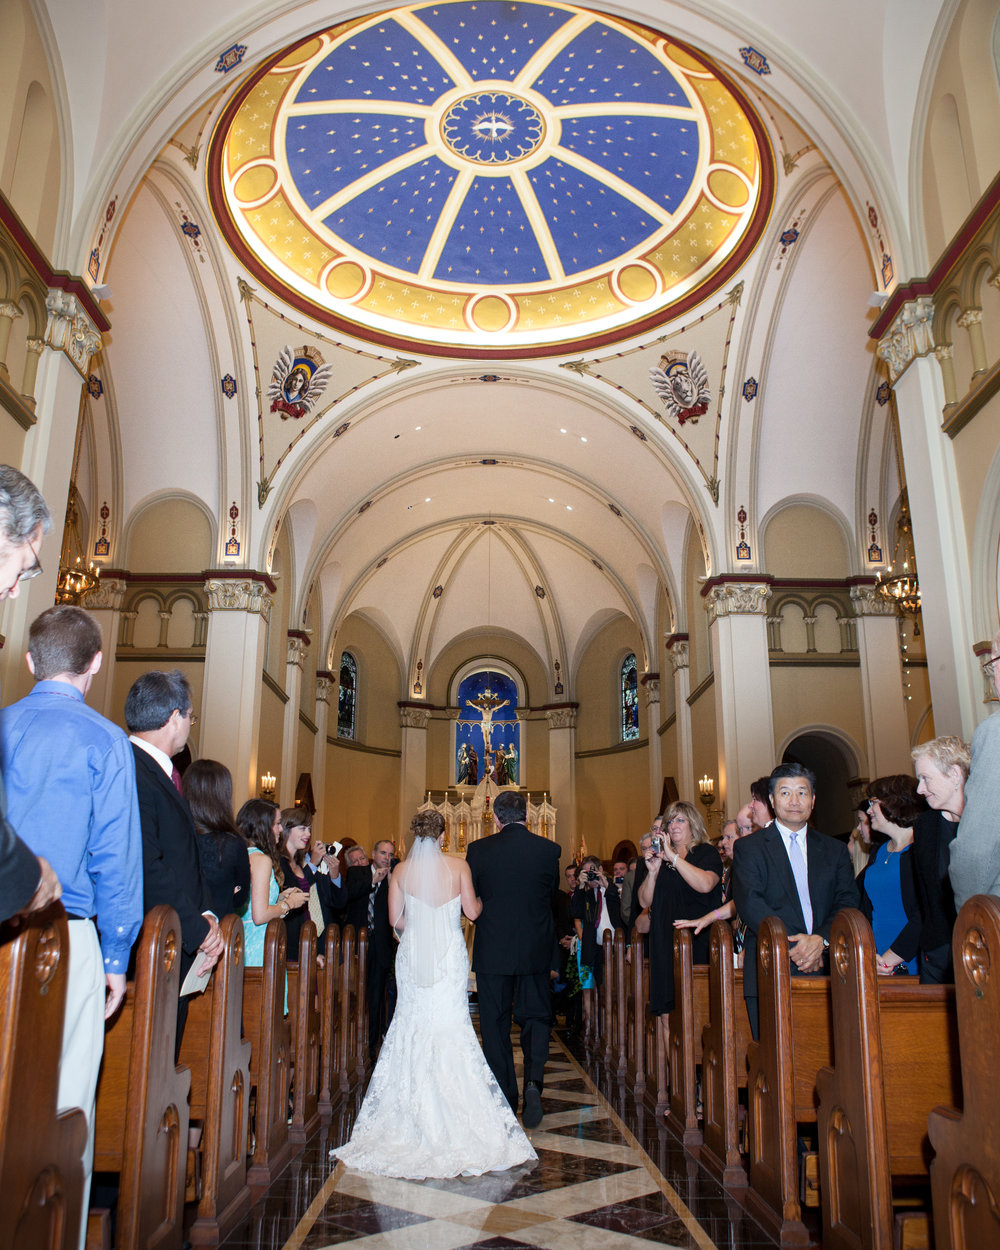 father of bride walking down aisle catholic mass wedding ceremony mount st marys immaculate conception chapel emmitsburg md.jpg